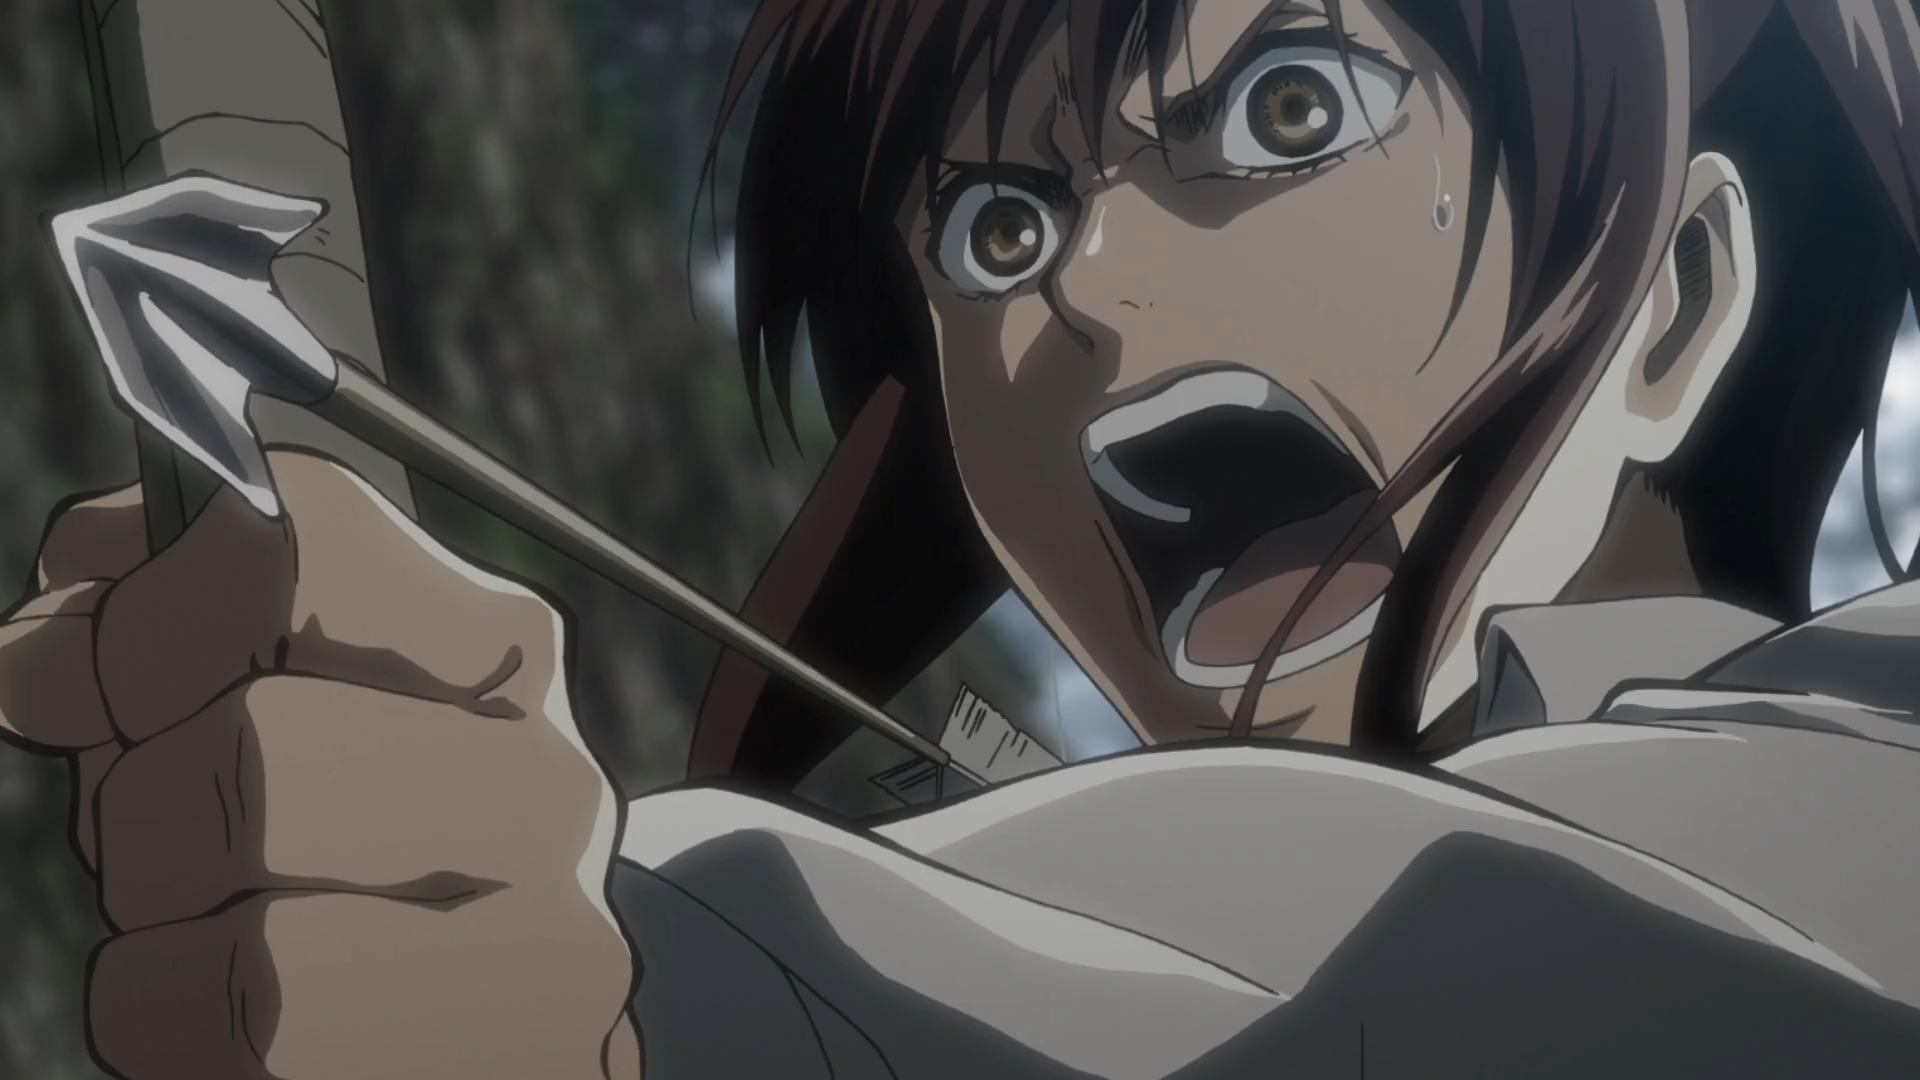 Each Of The Scenes Made It Feel Like I Was Watching A Movie And Not An Anime Attack On Titan